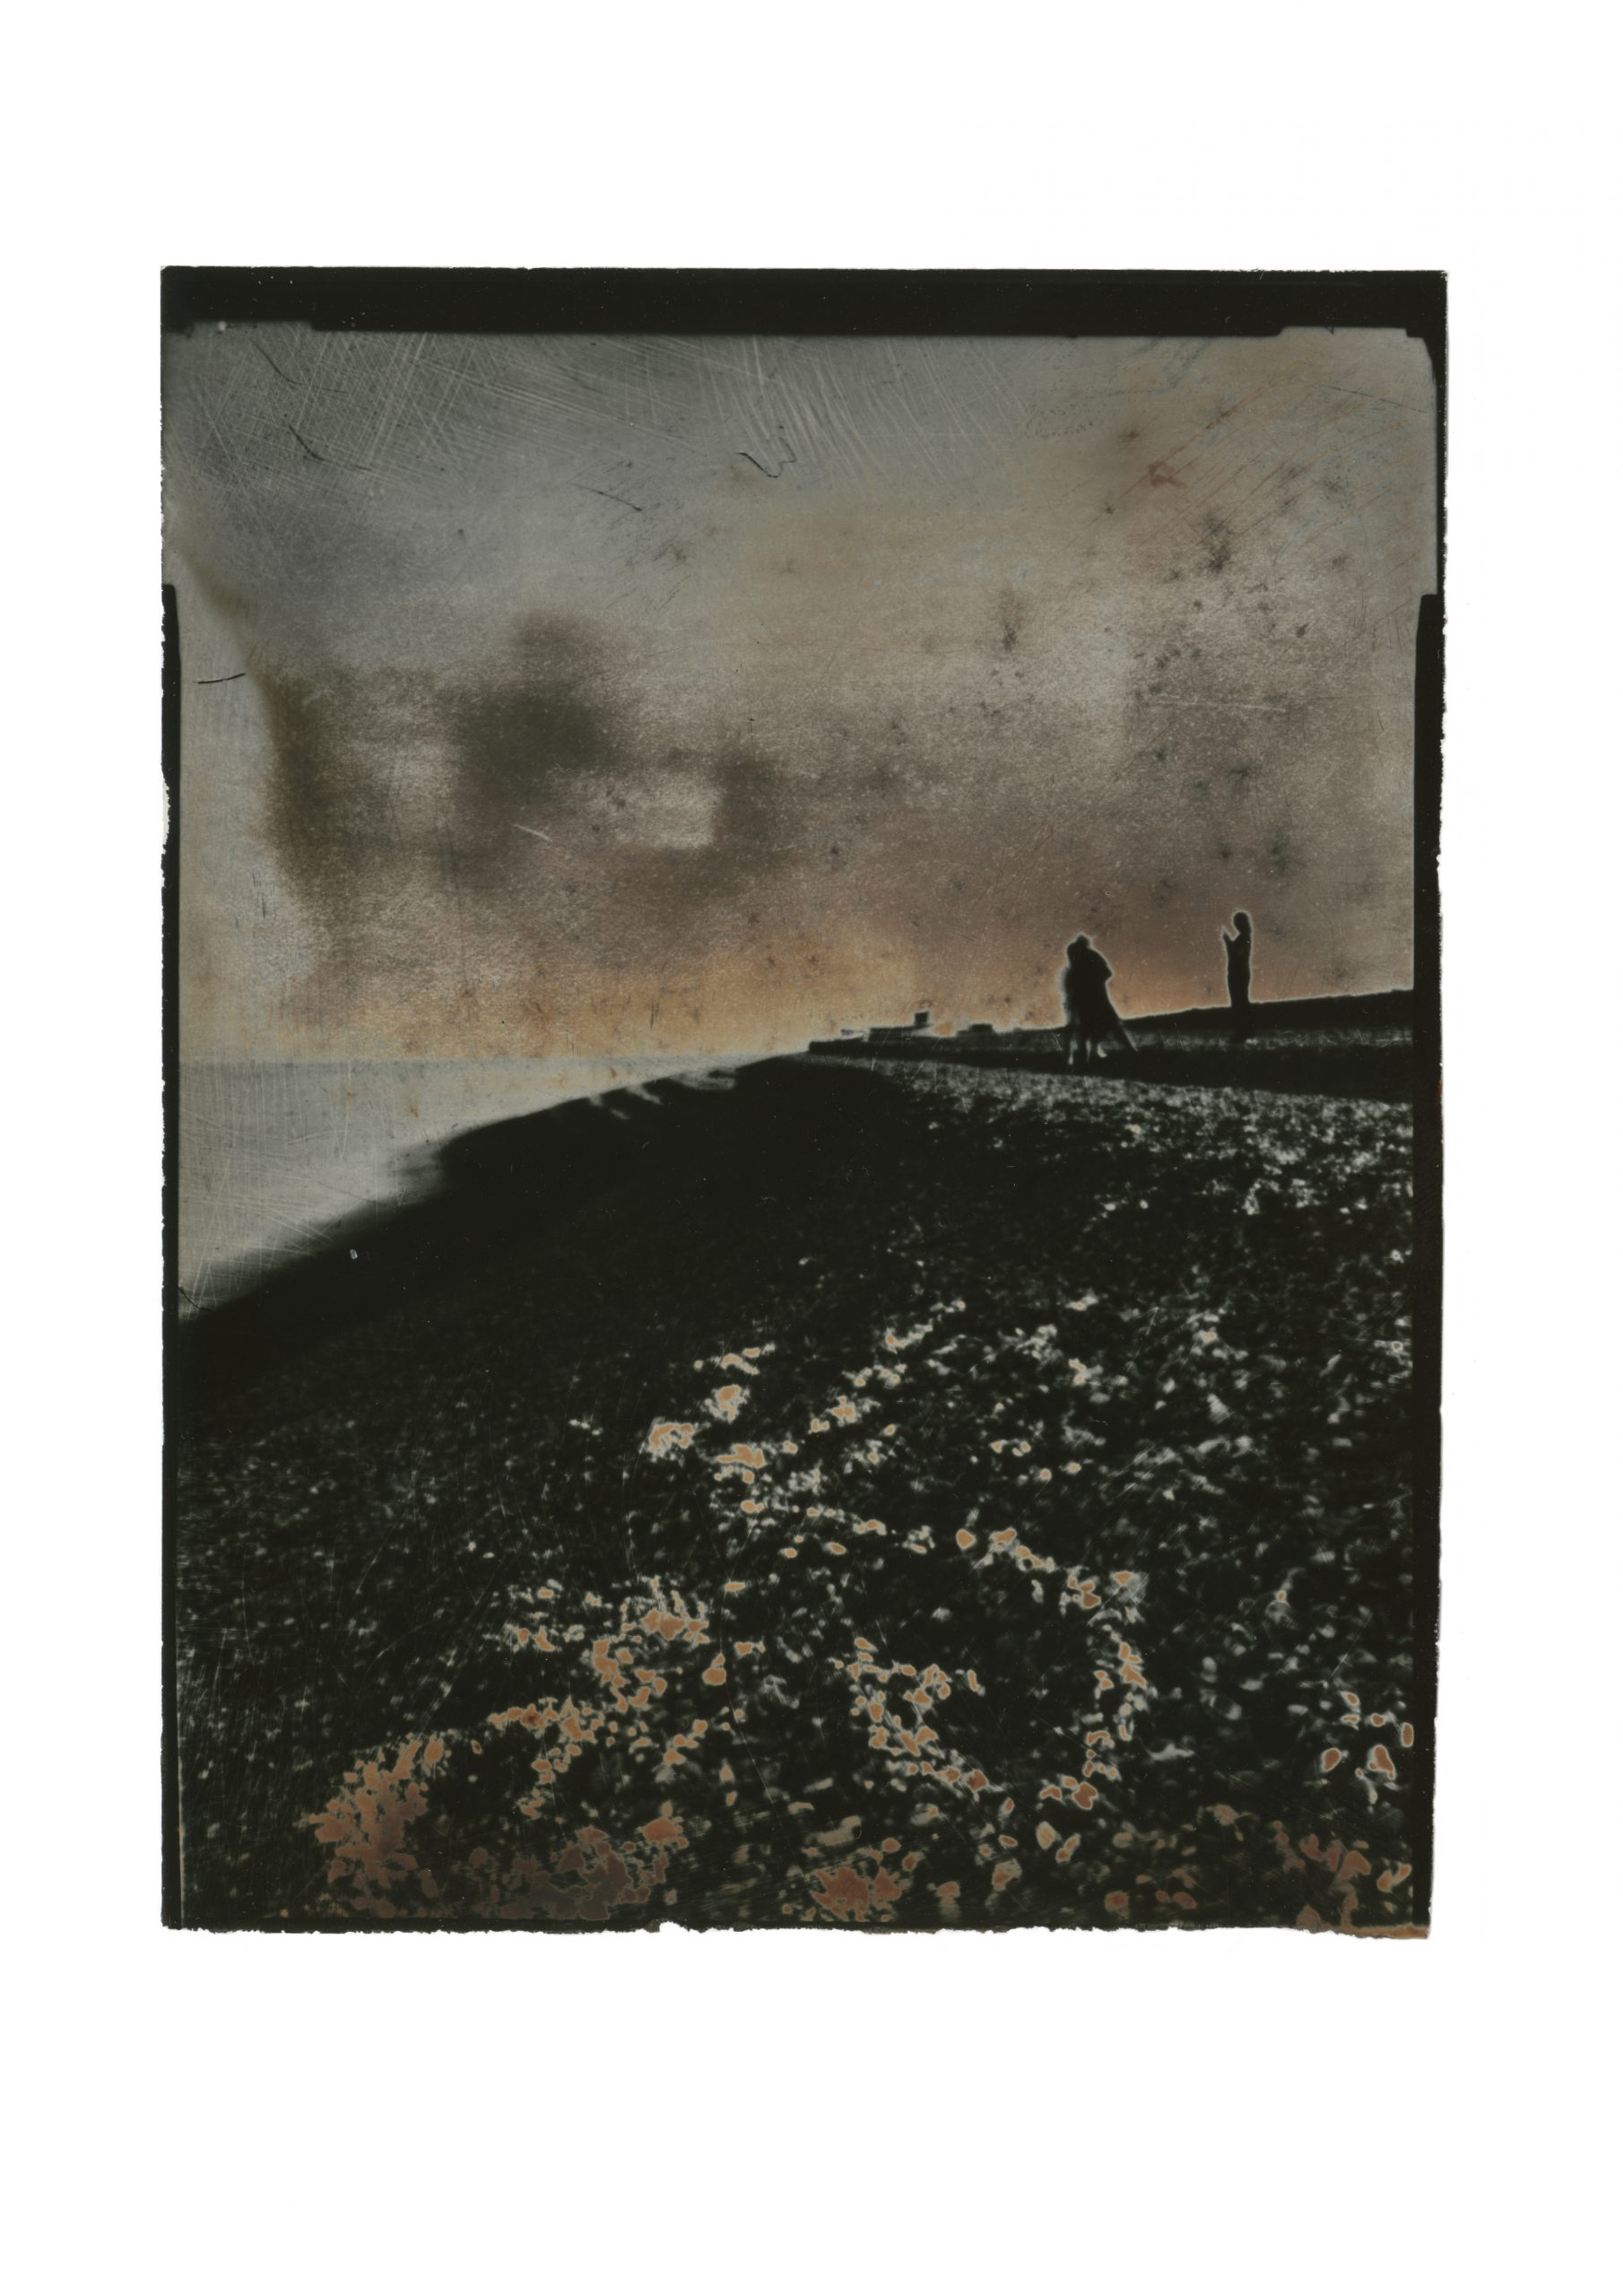 brooding contrasty image of steep bank of shingle with handprinted sky horizon line punctuated by shout of two figures